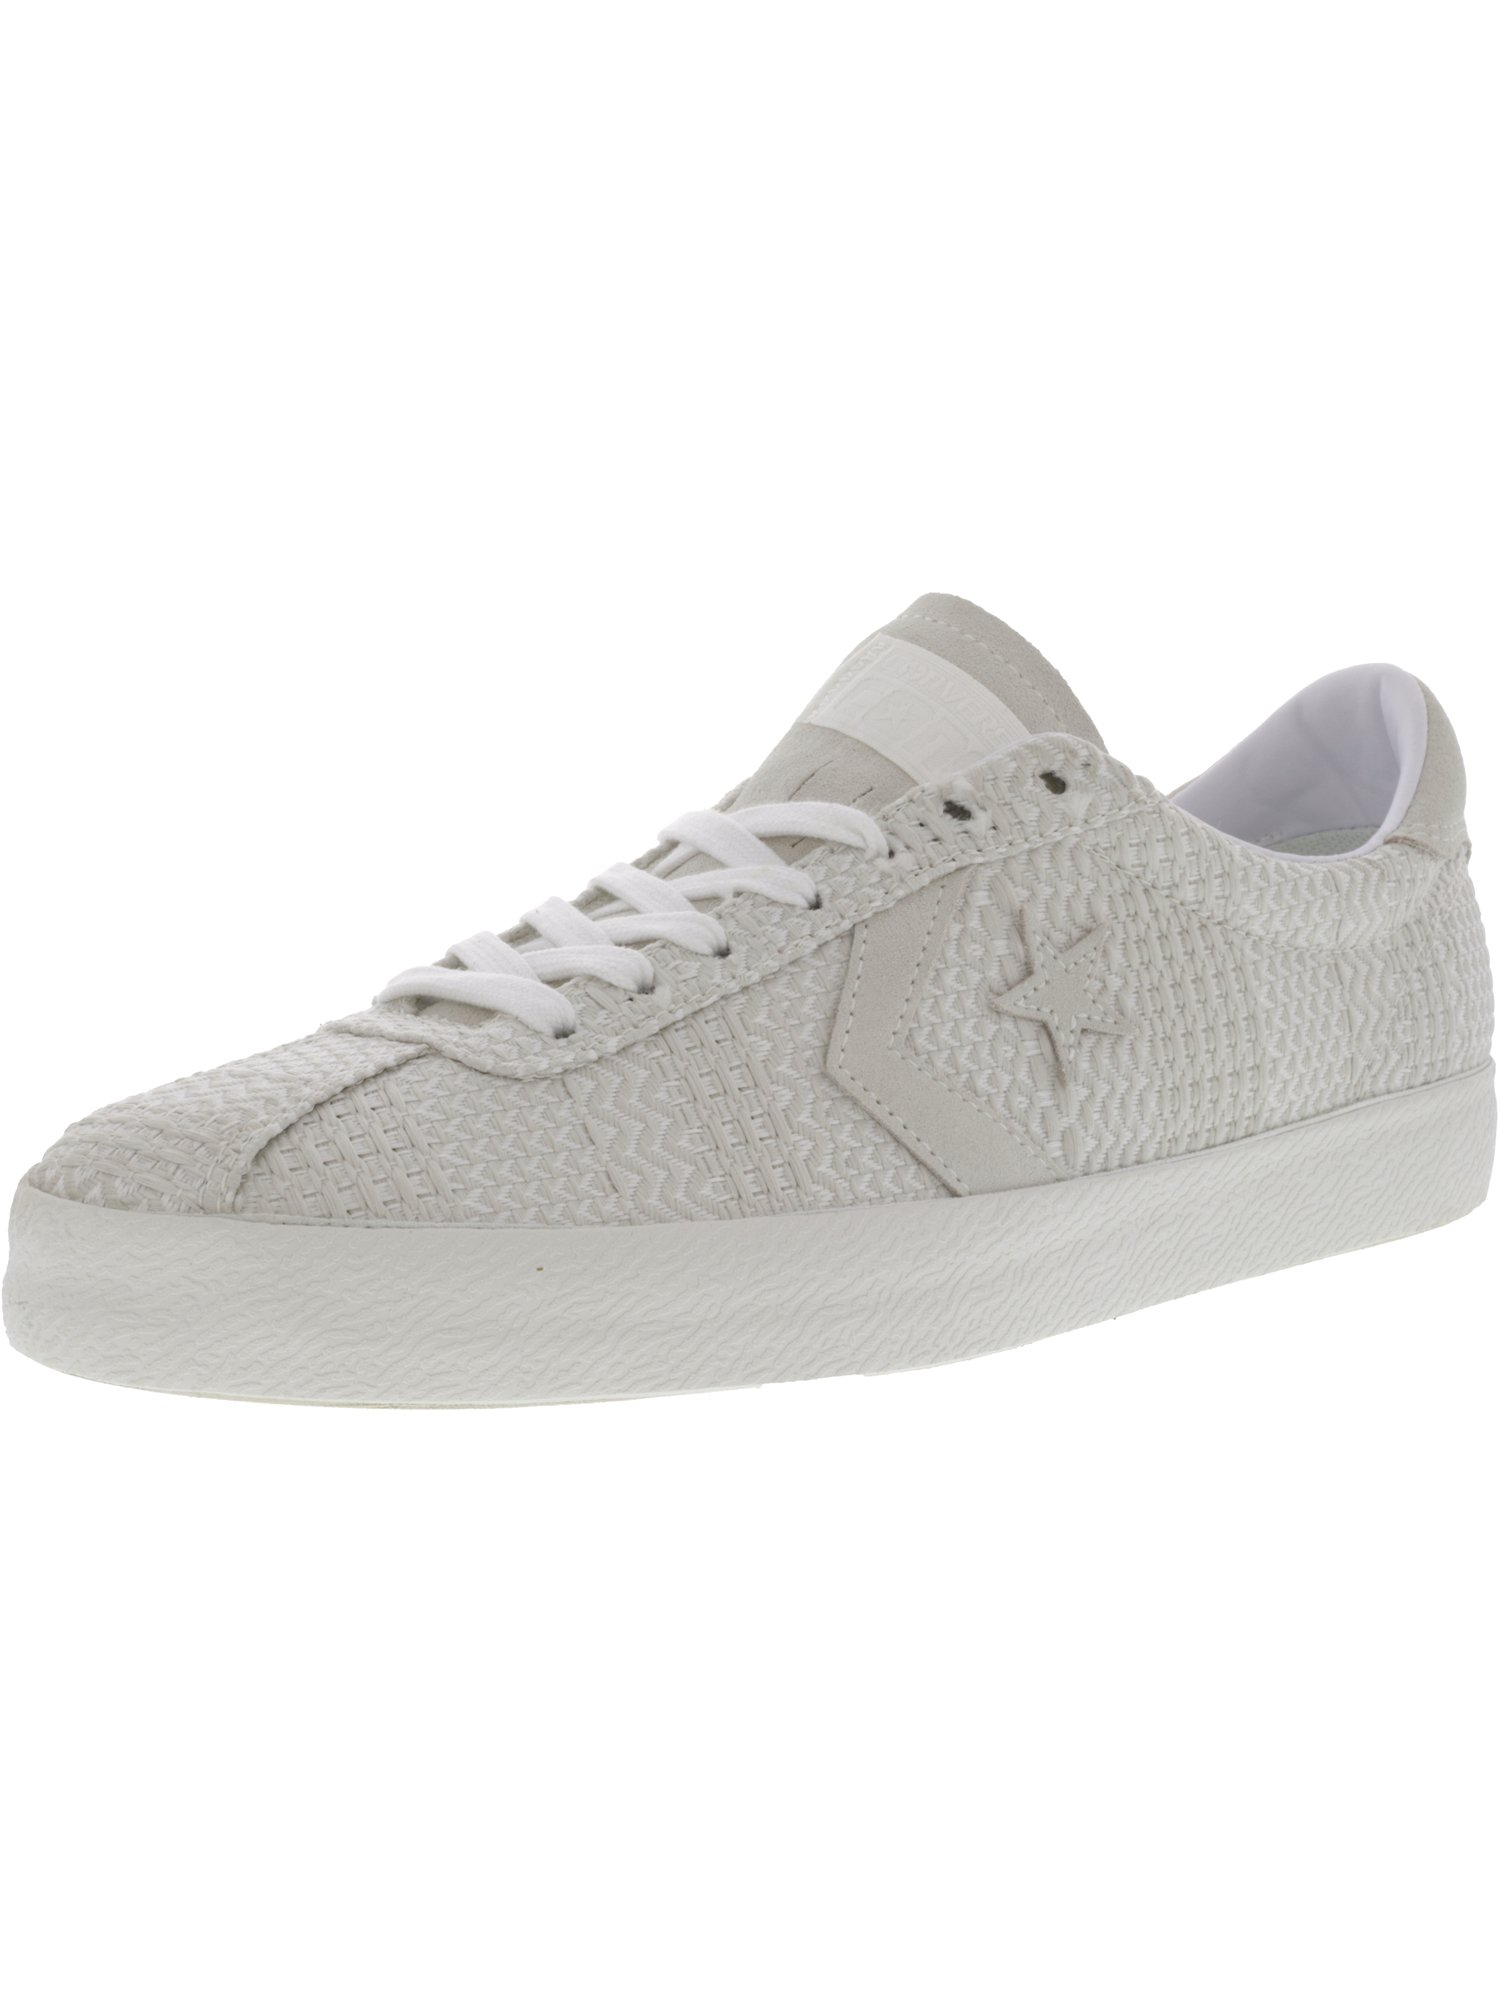 b81e4b03a05a Converse Break Point Ox Vaporous White Low Top Skateboarding Shoe ...